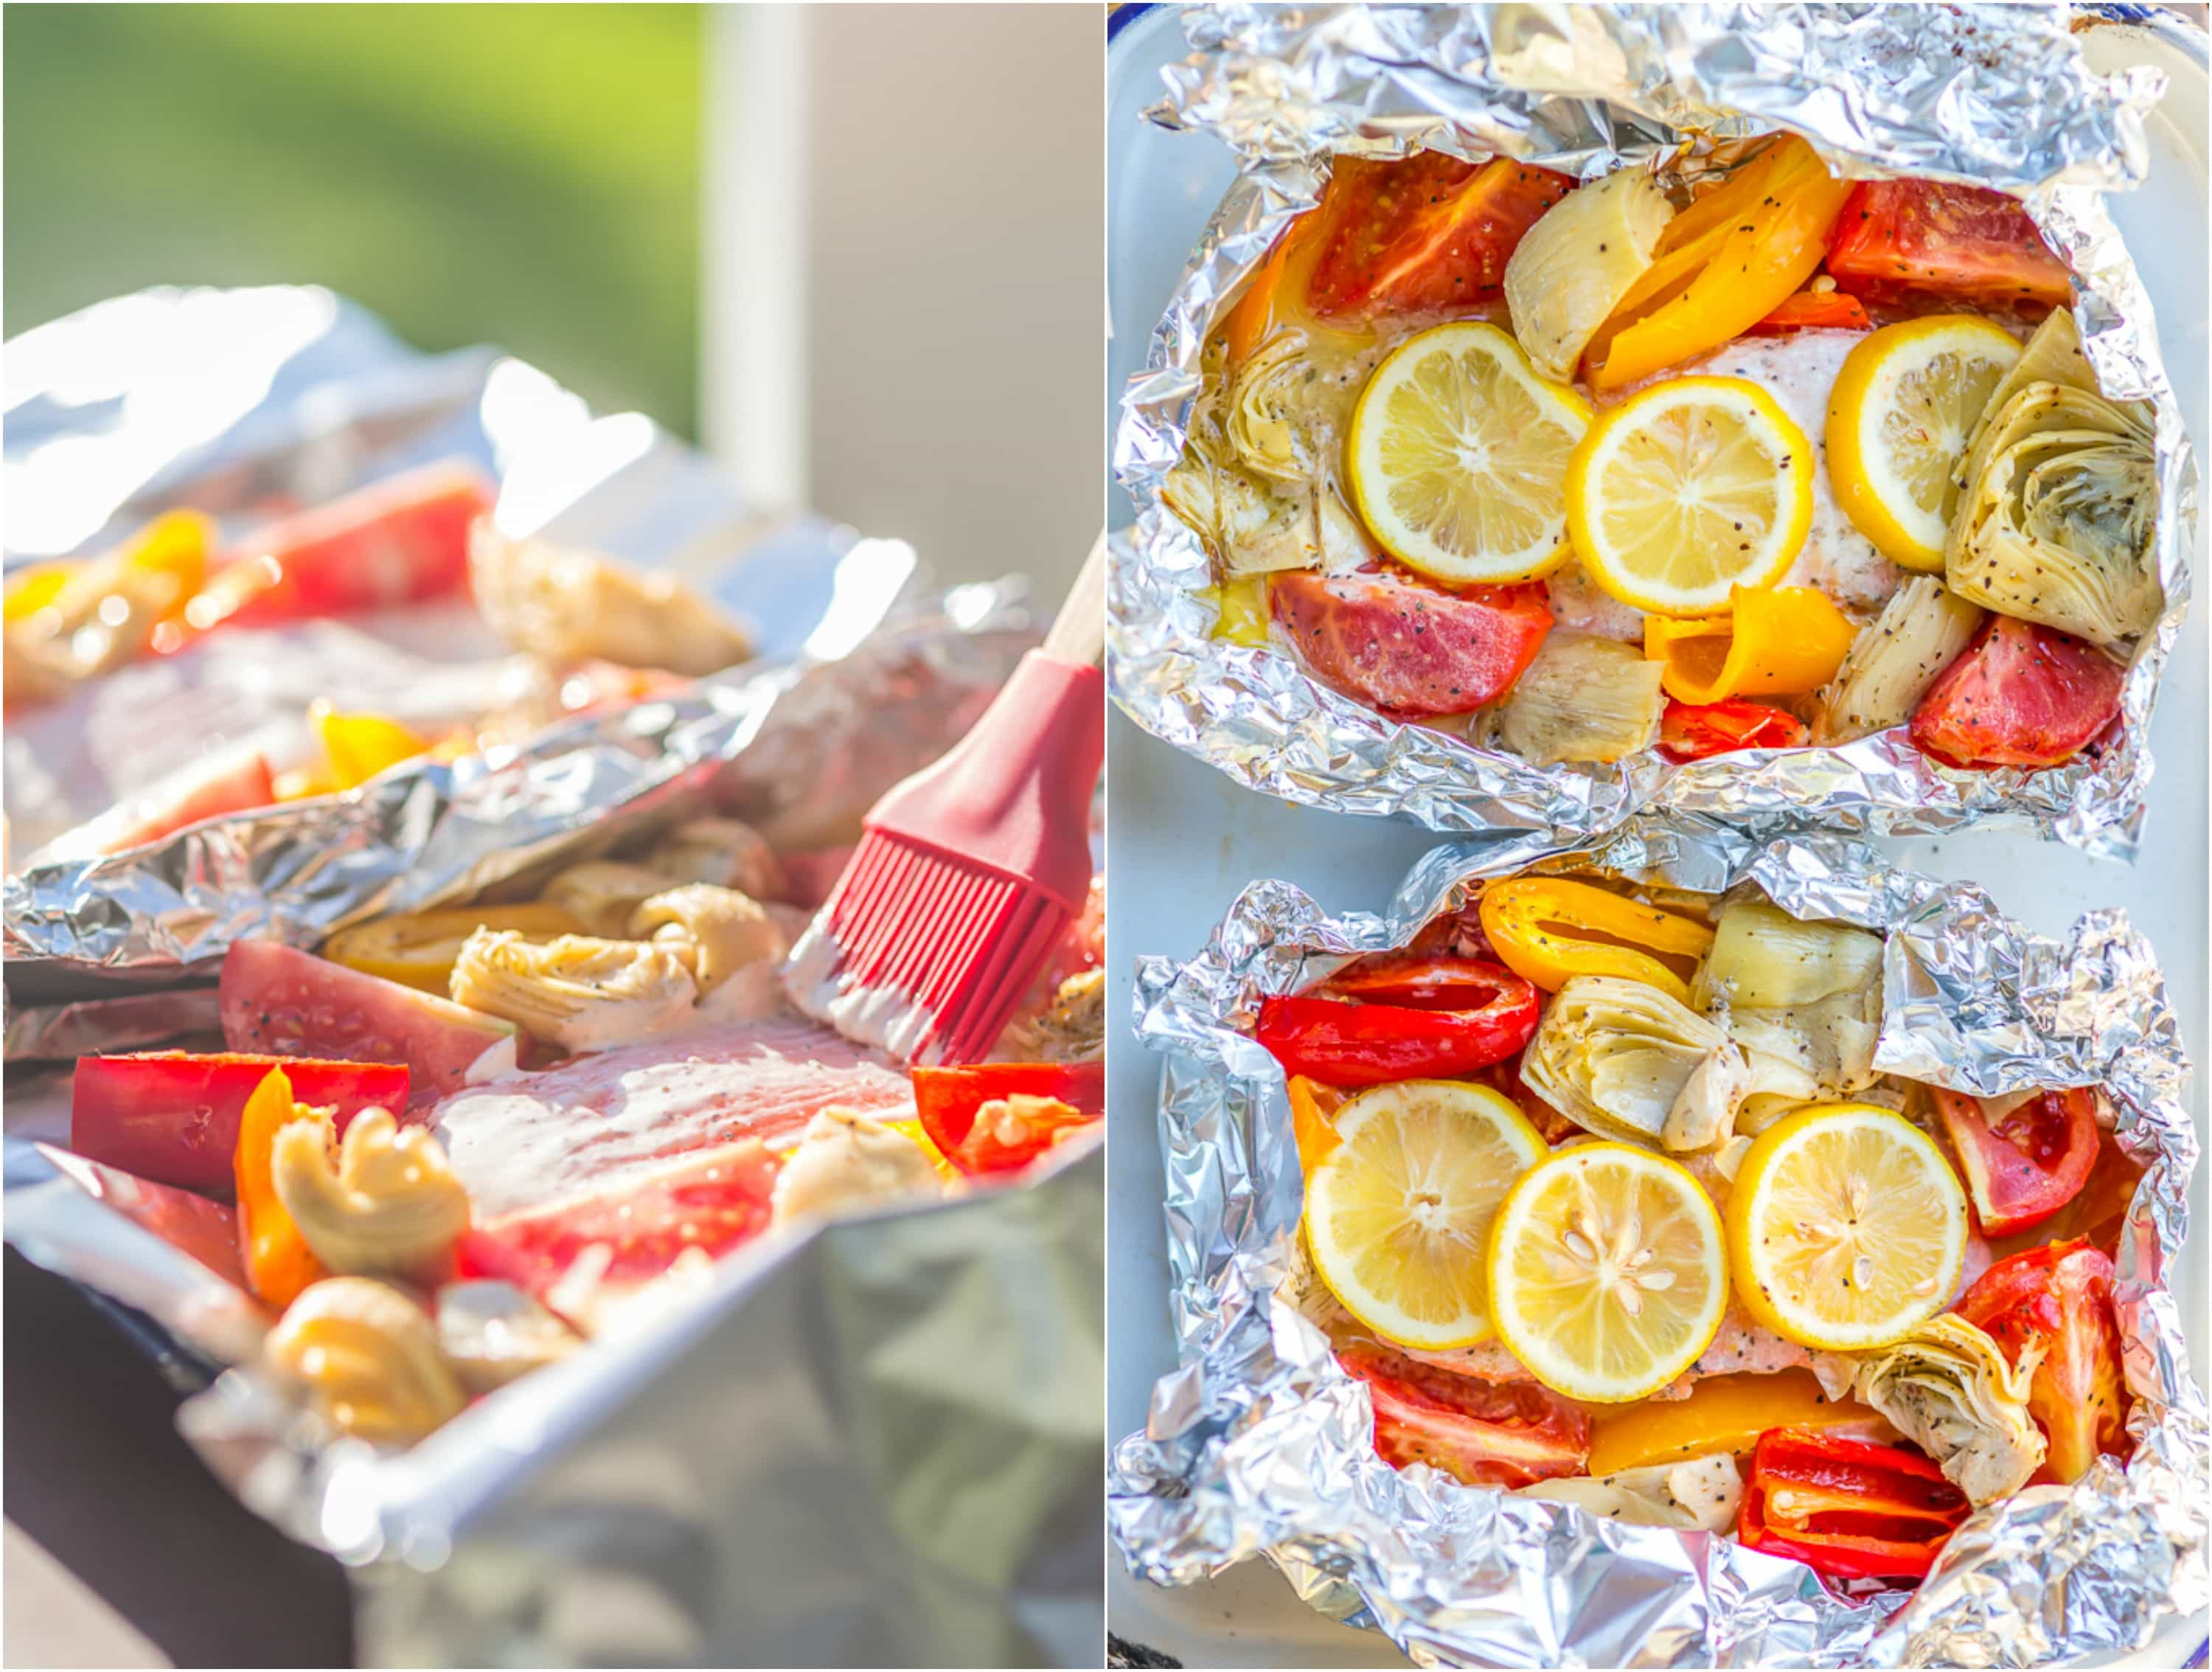 How to grill salmon in foil packets